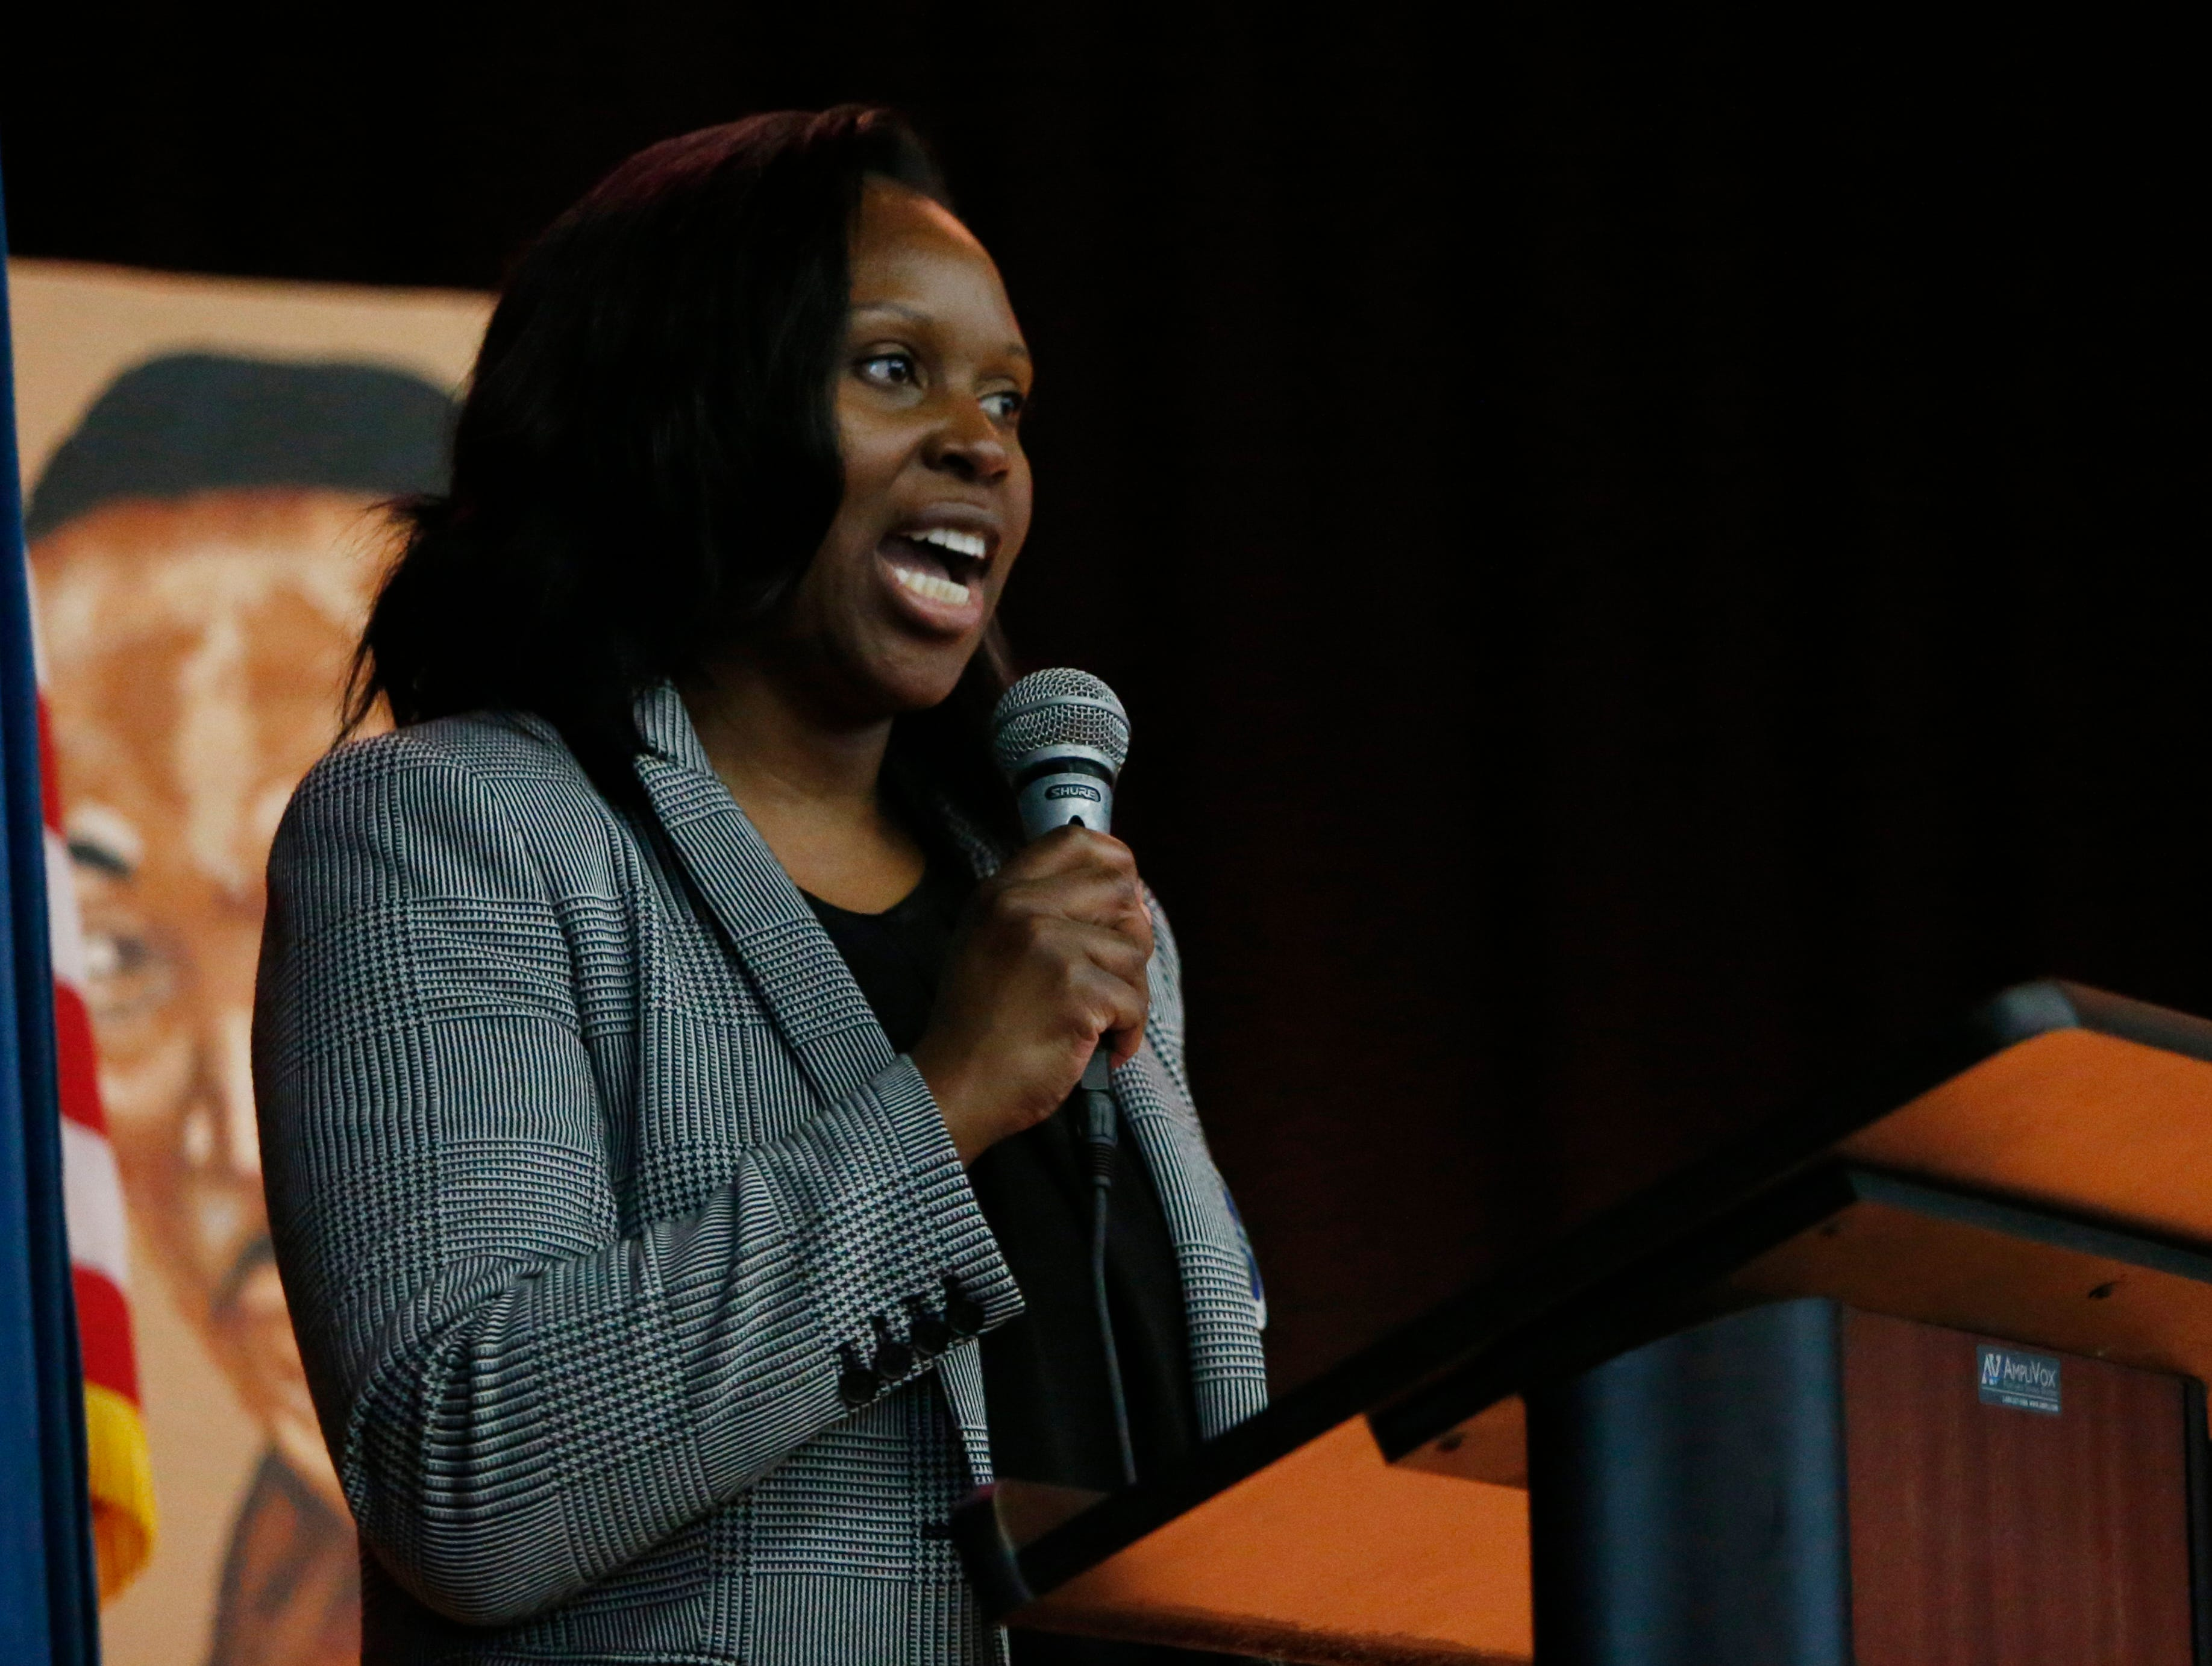 Karmen Smallwood of the Dutchess County Office of Probation and Criminal Corrections  speaks to students during Thursday's Martin Luther King Celebration at Poughkeepsie High School on February 14, 2019.